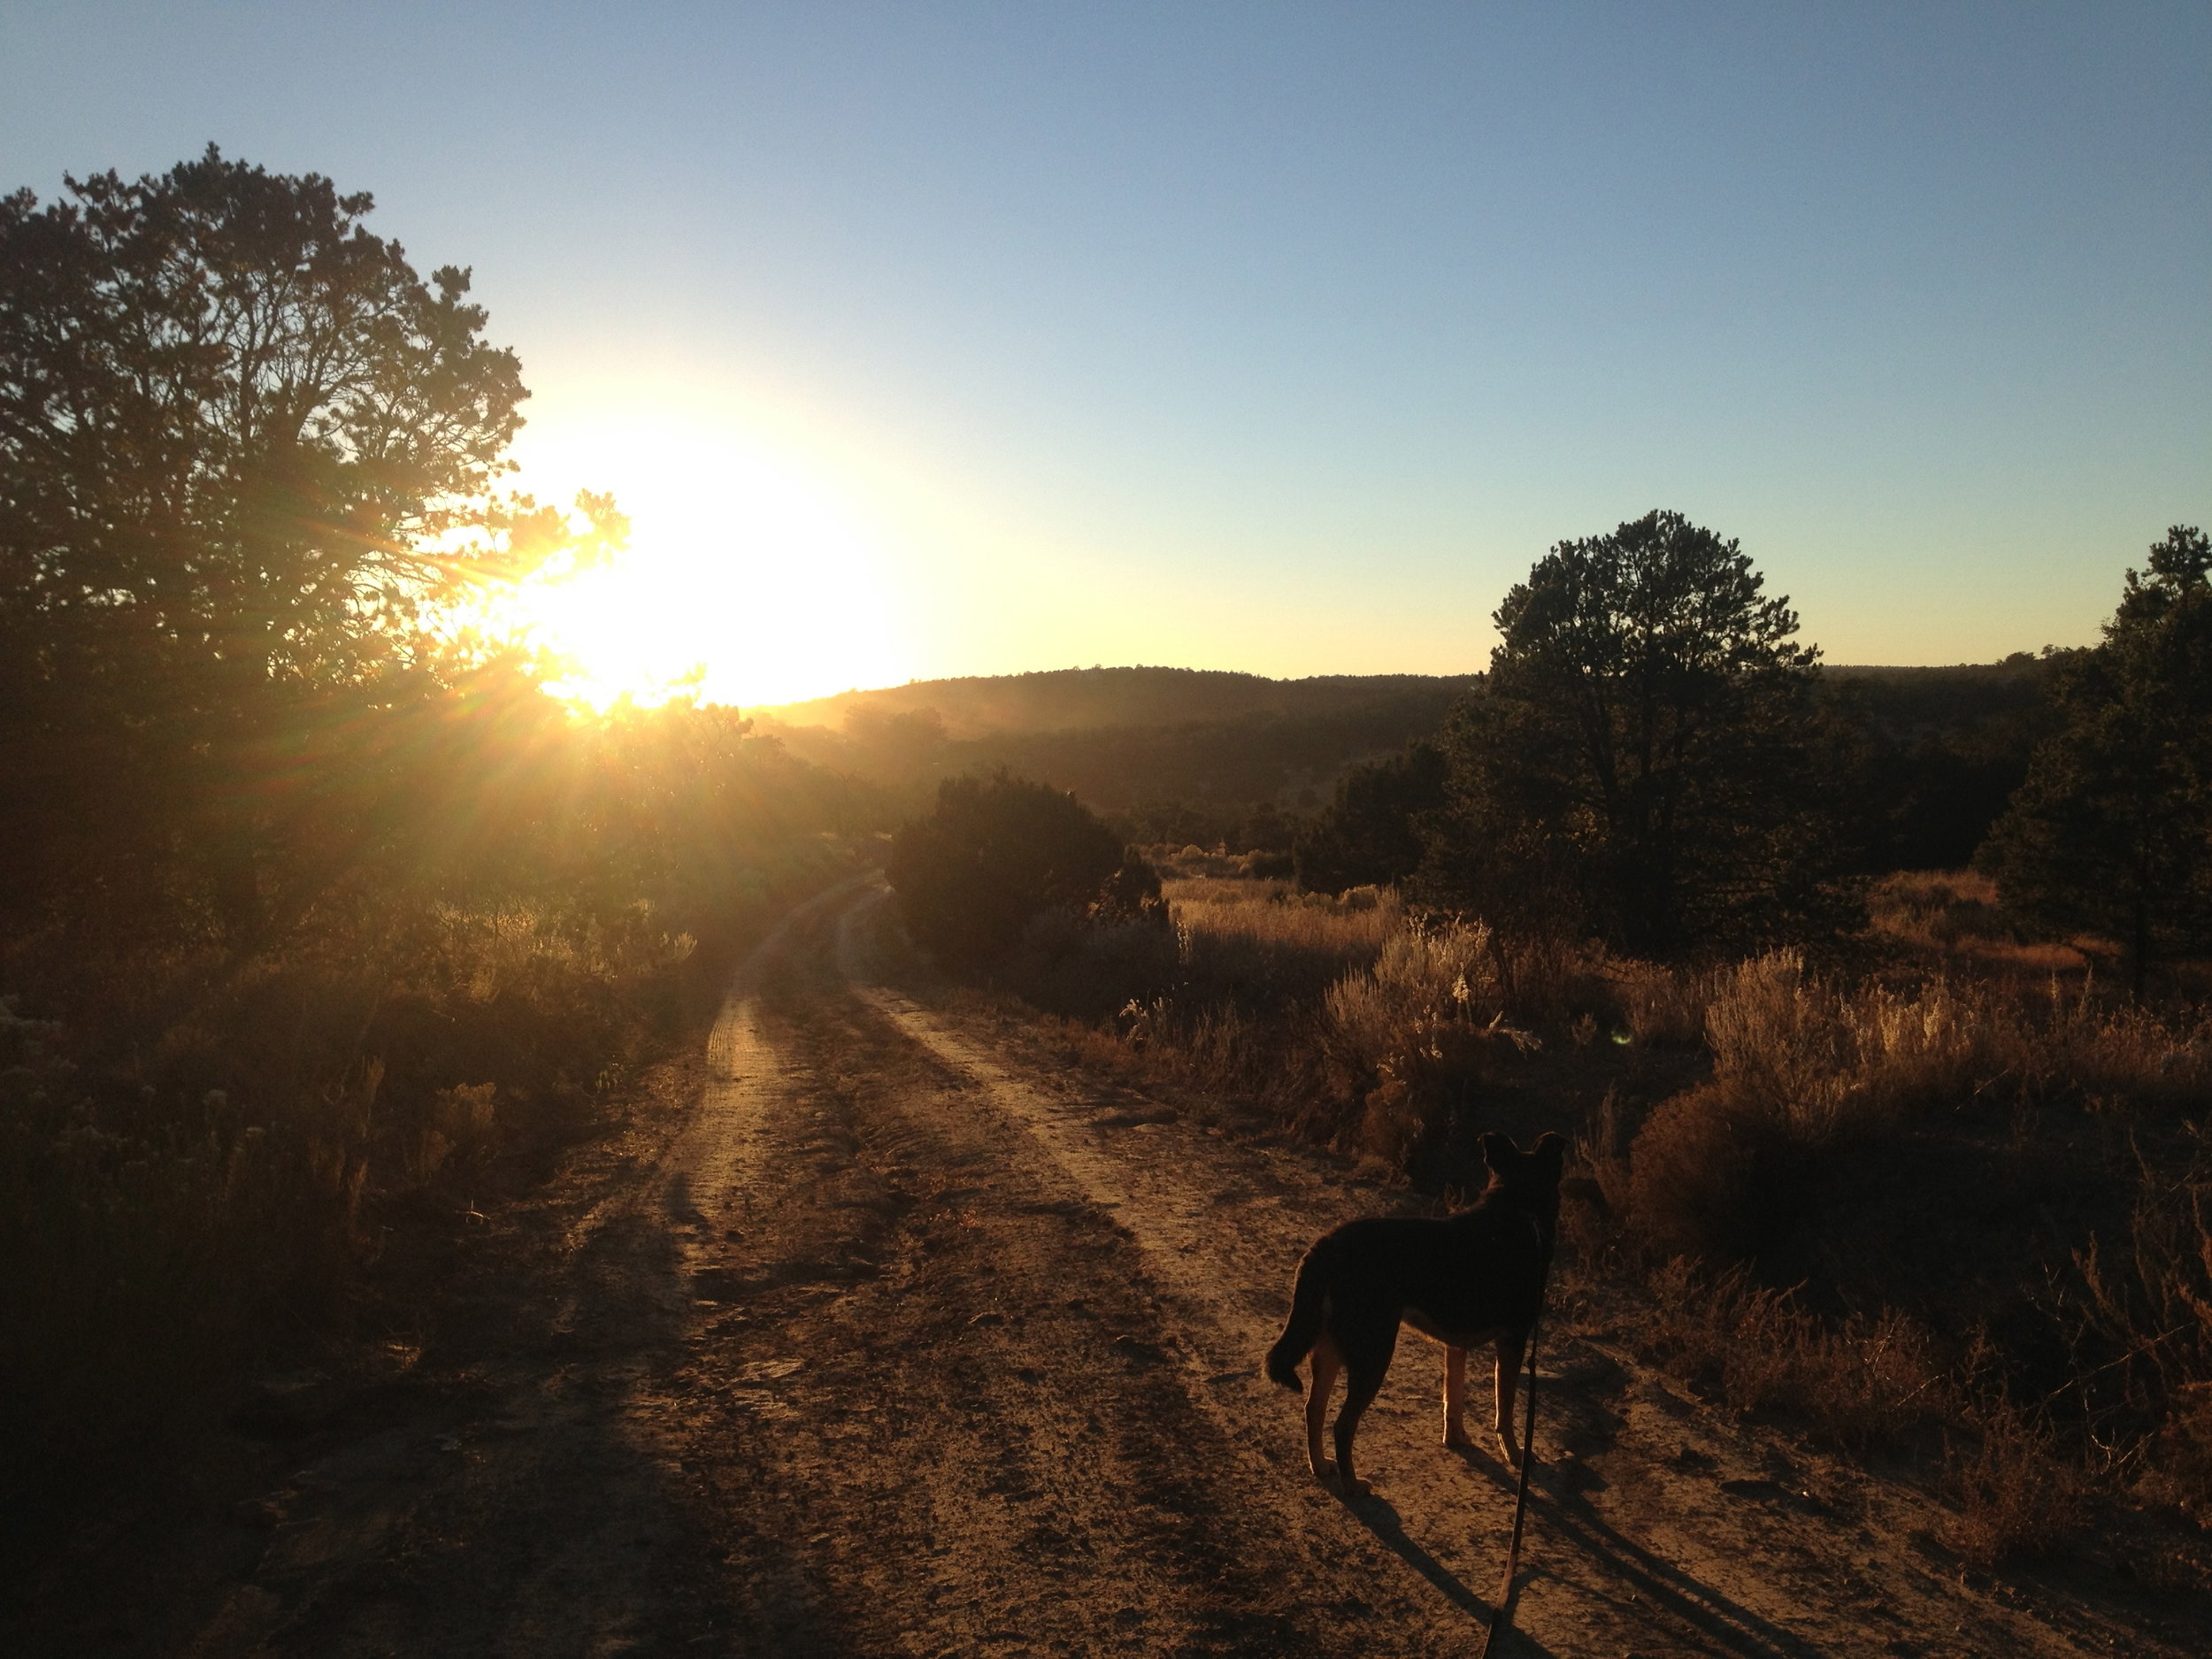 An evening hike in the neighborhood with our dog Ziggy.